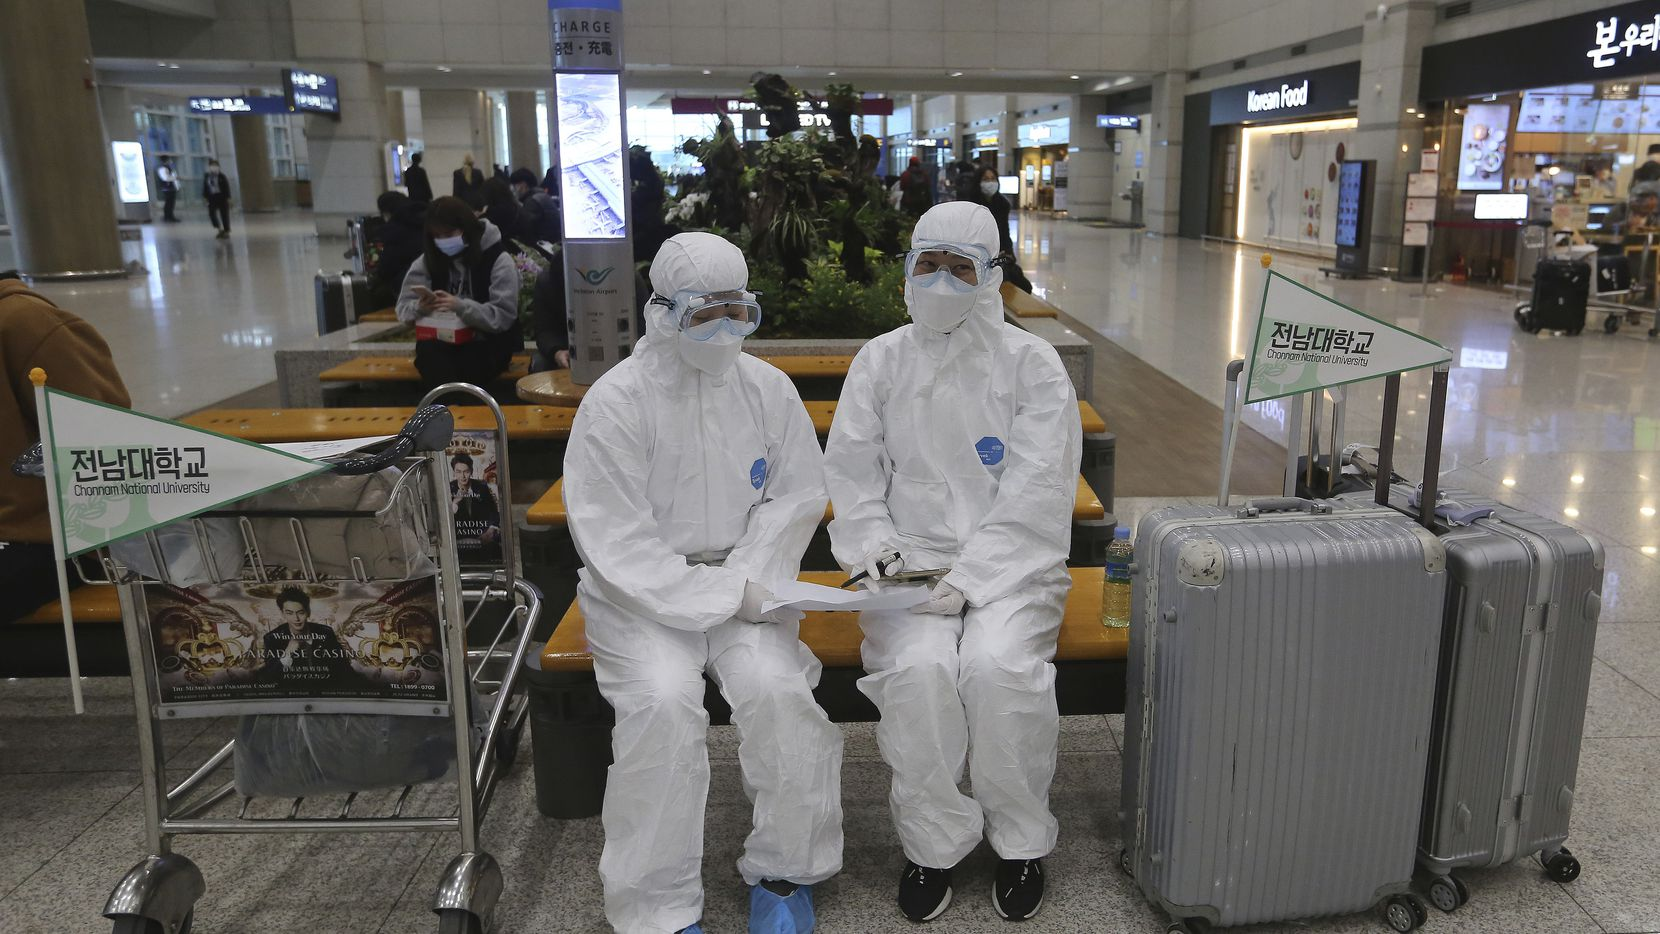 The Guardian: China reports no domestic cases of coronavirus for first time since outbreak began